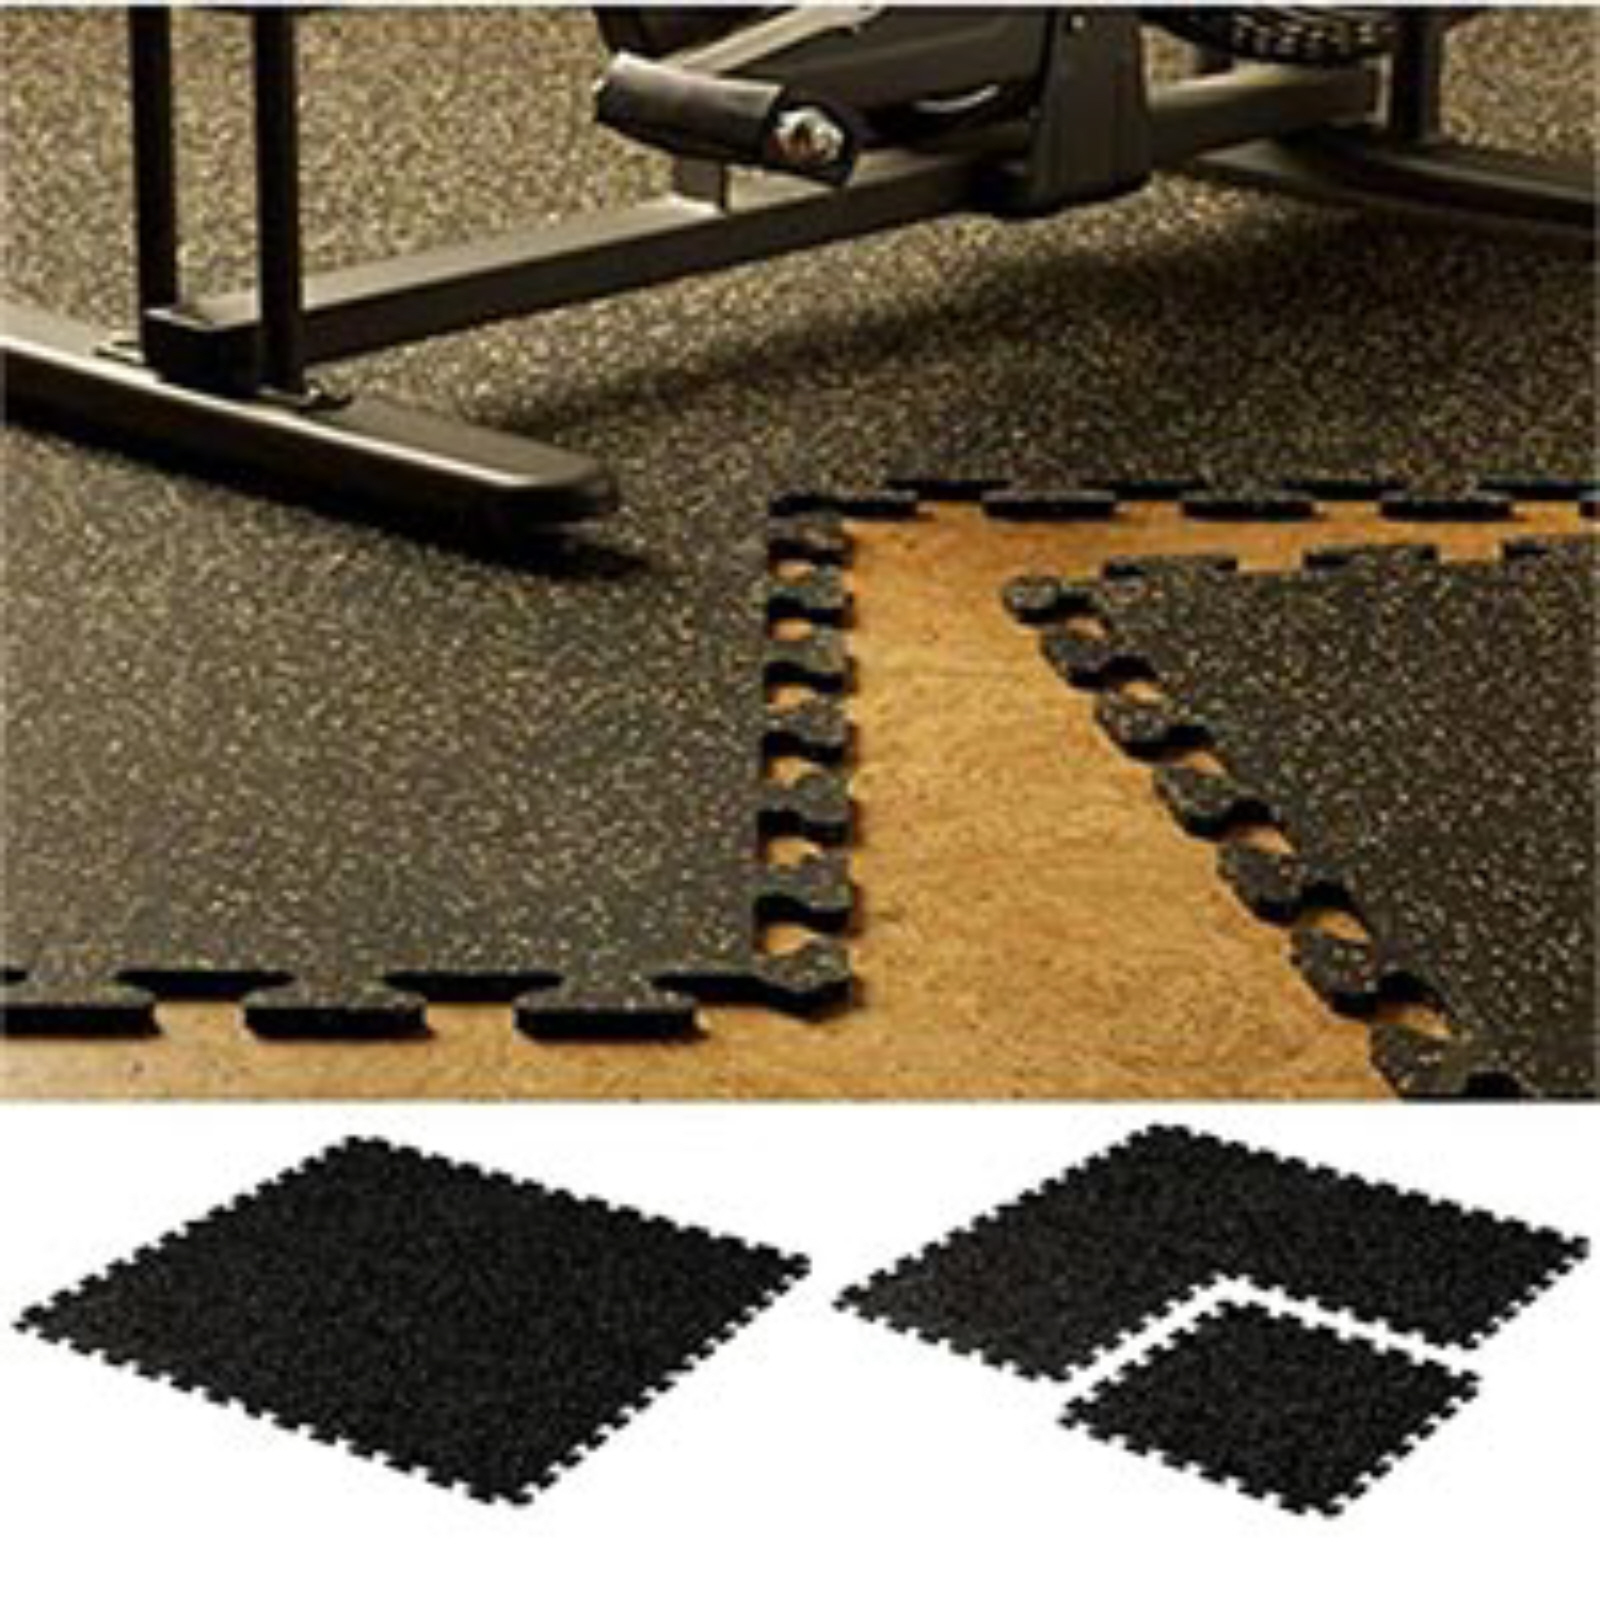 Ez-Flex Interlocking Rubber Floor Tiles